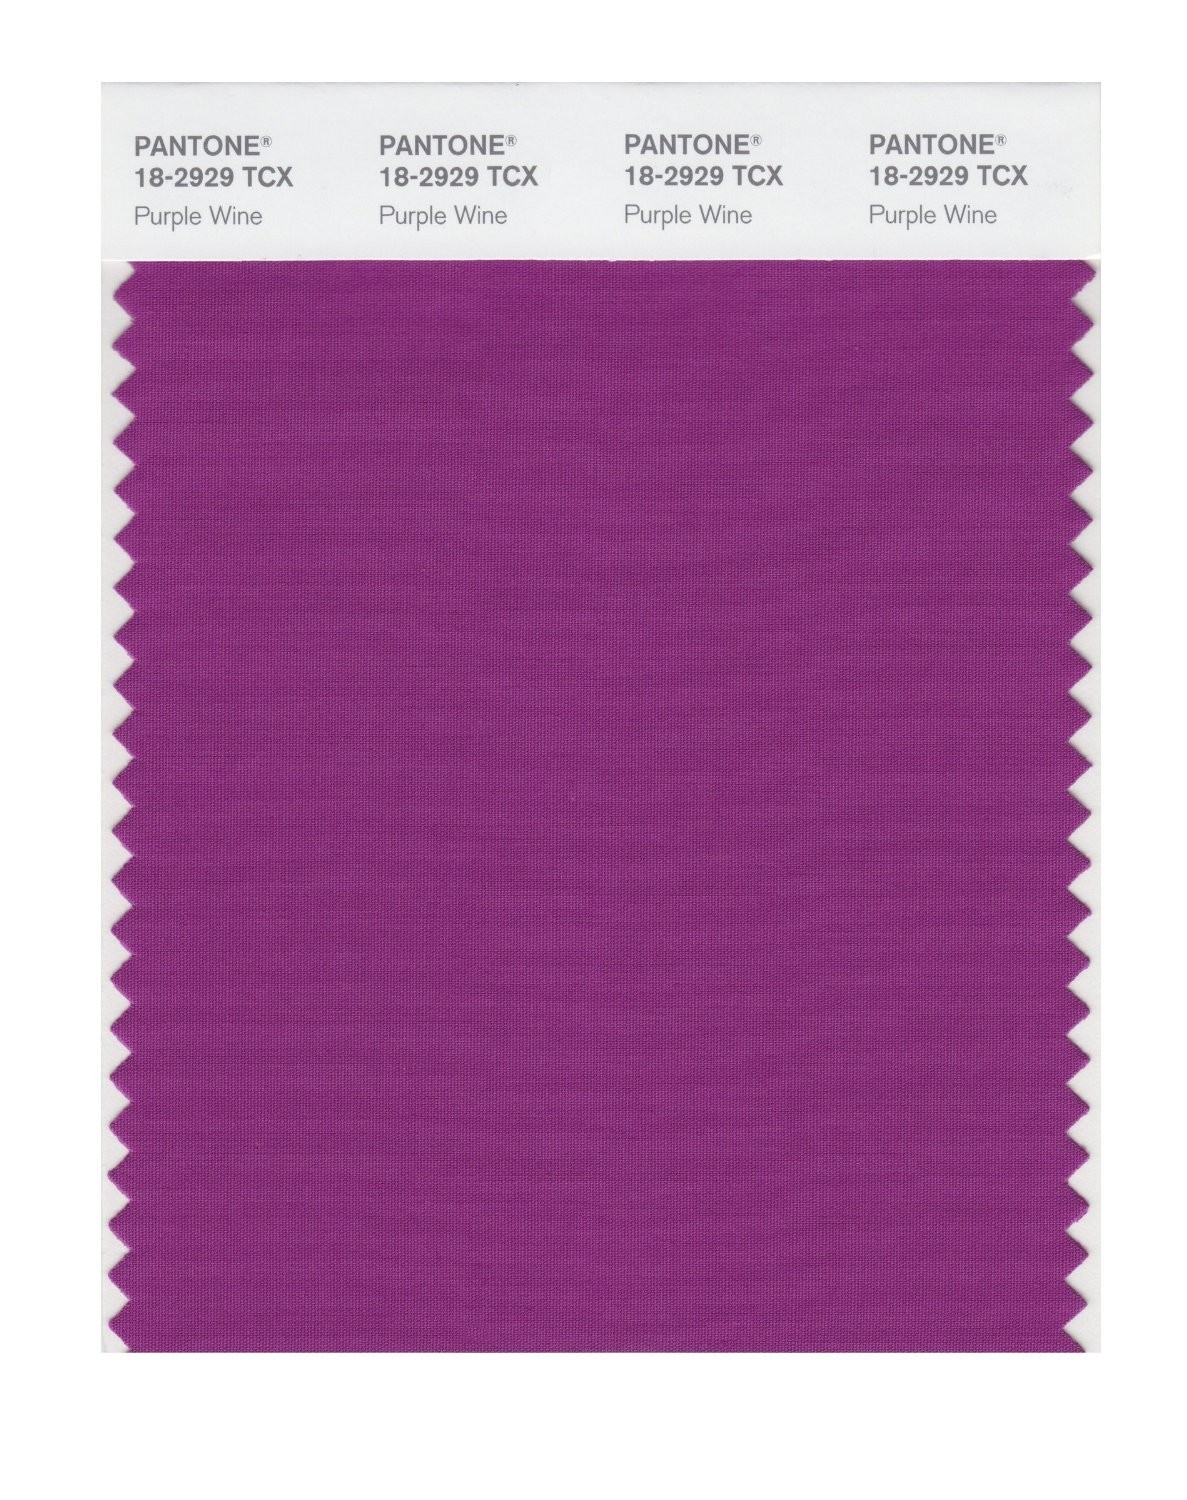 Pantone 18-2929 TCX Swatch Card Purple Wine